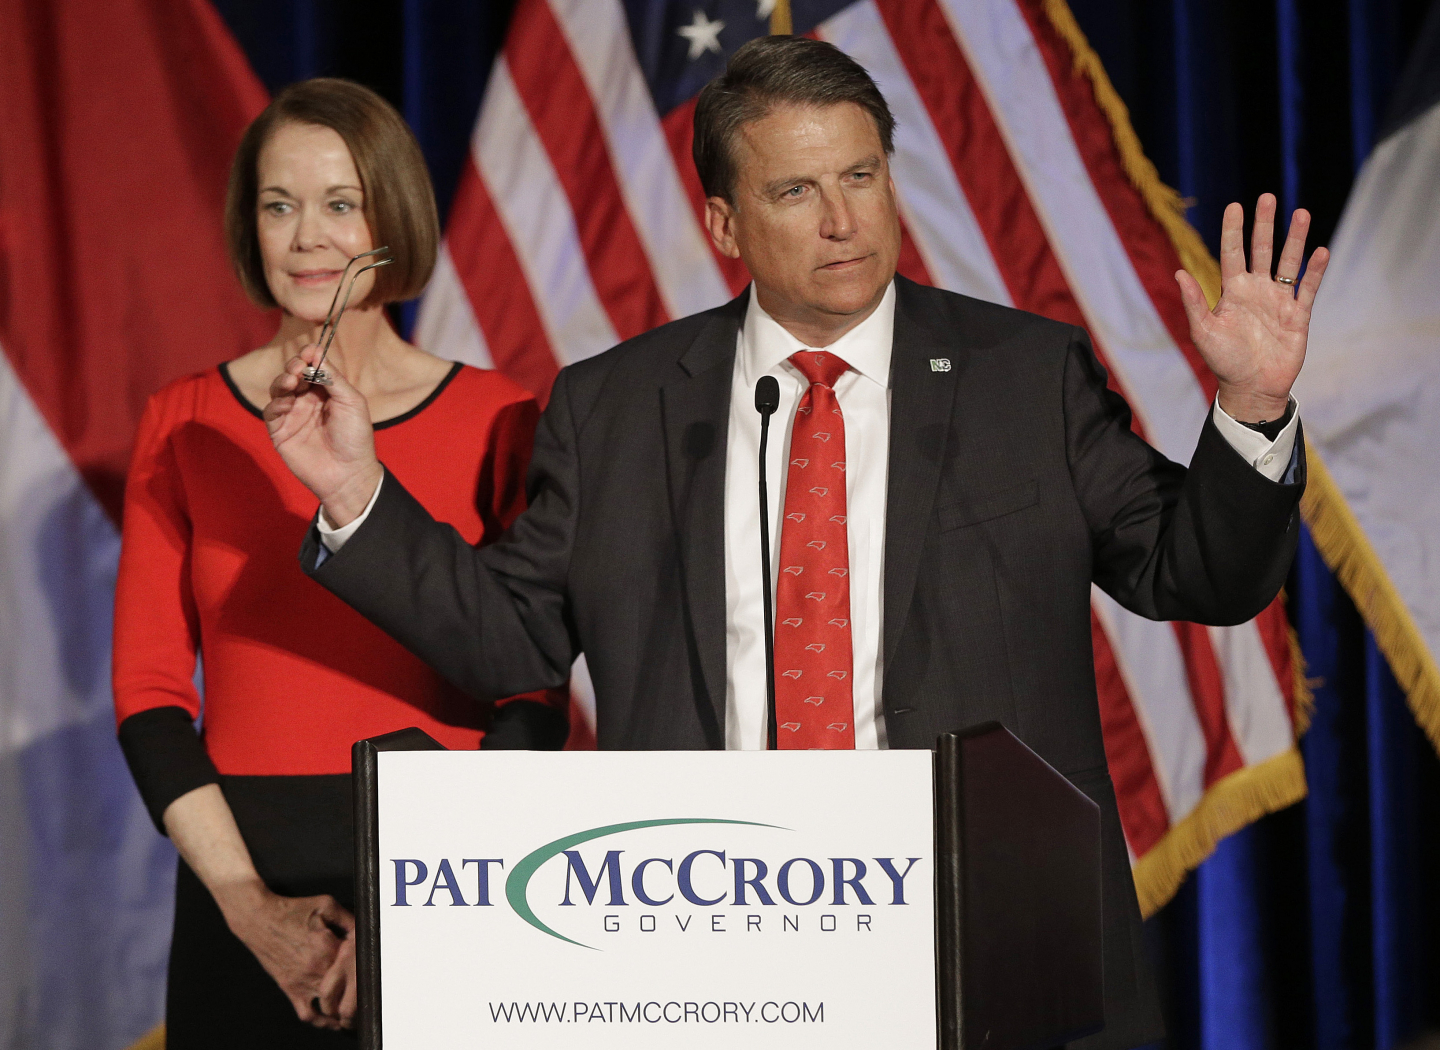 Pat McCrory's Resurgence a Loss for Cancel Culture